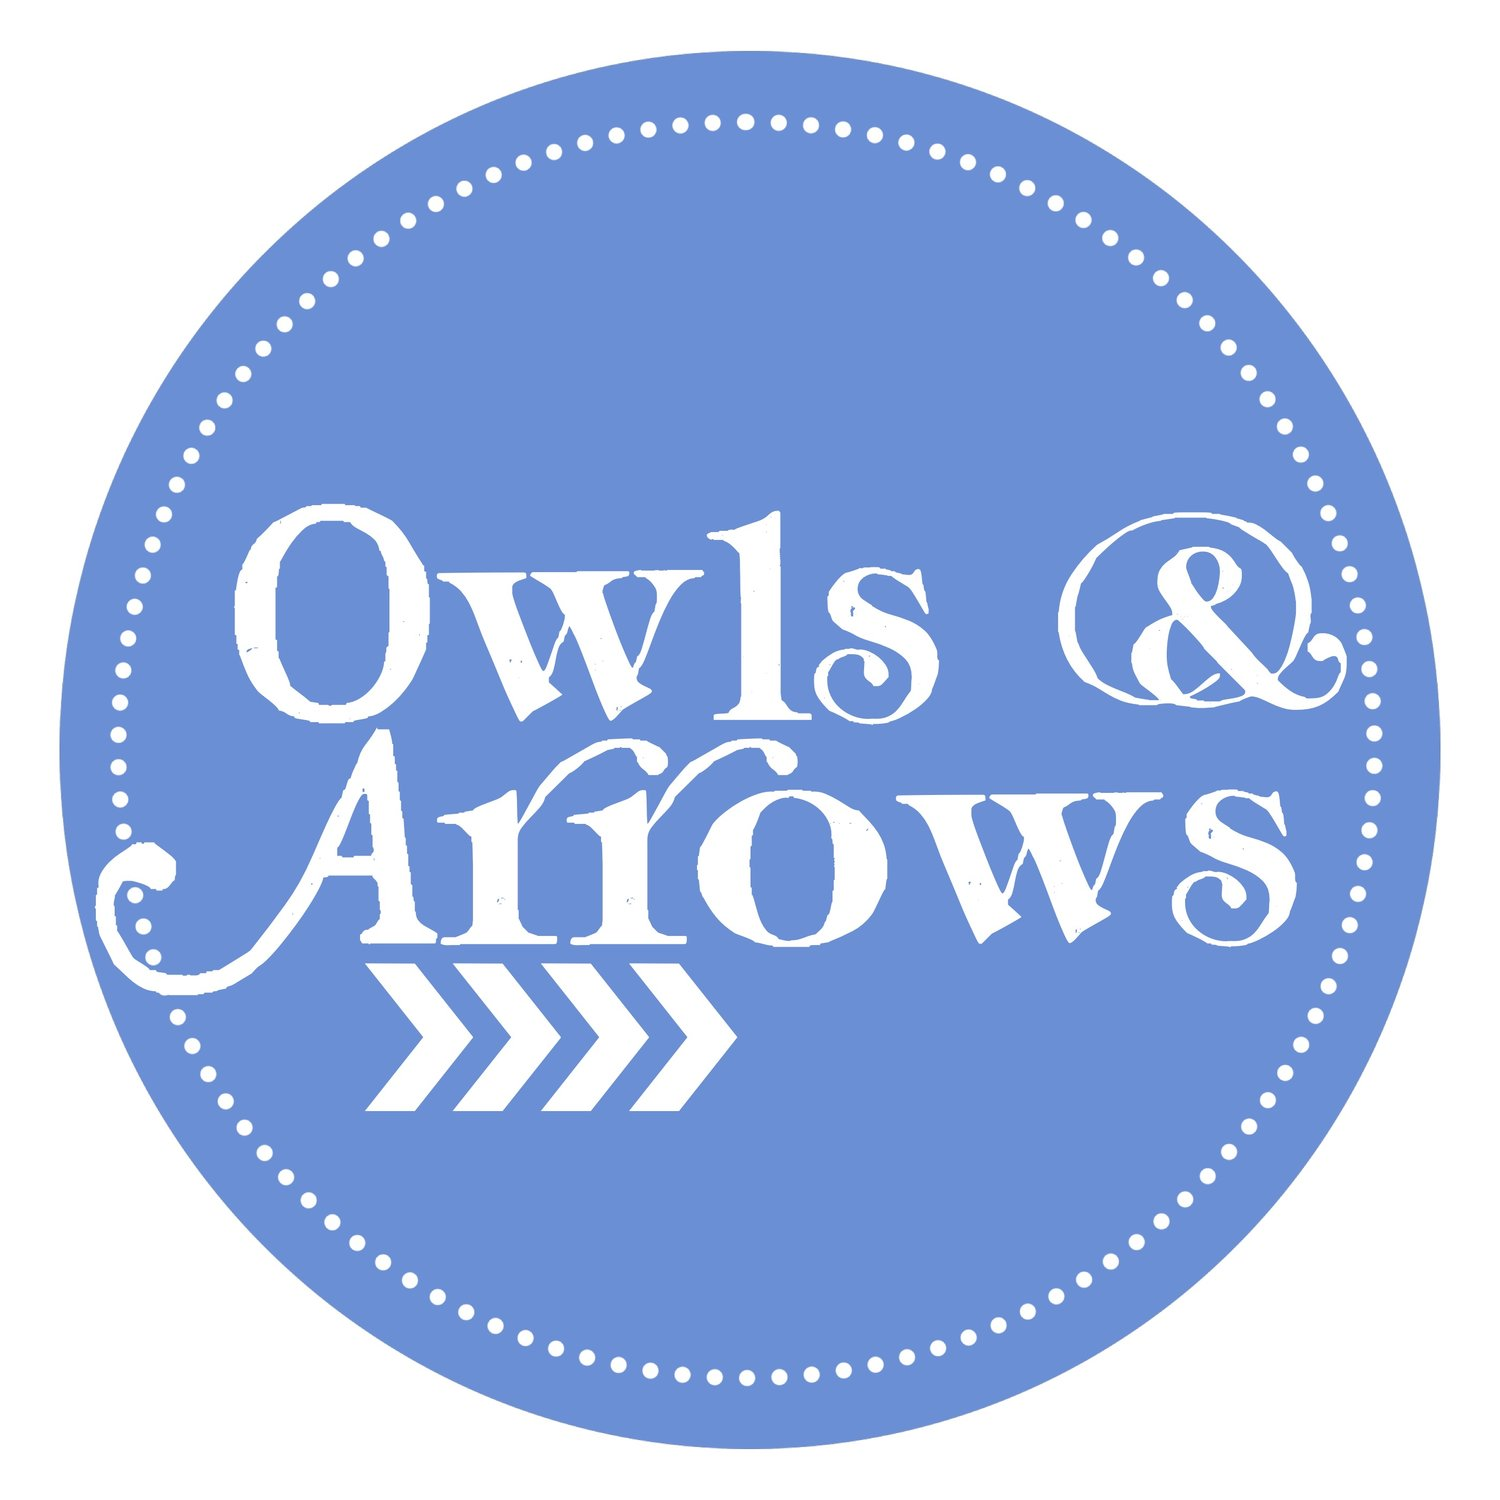 Owls & Arrows